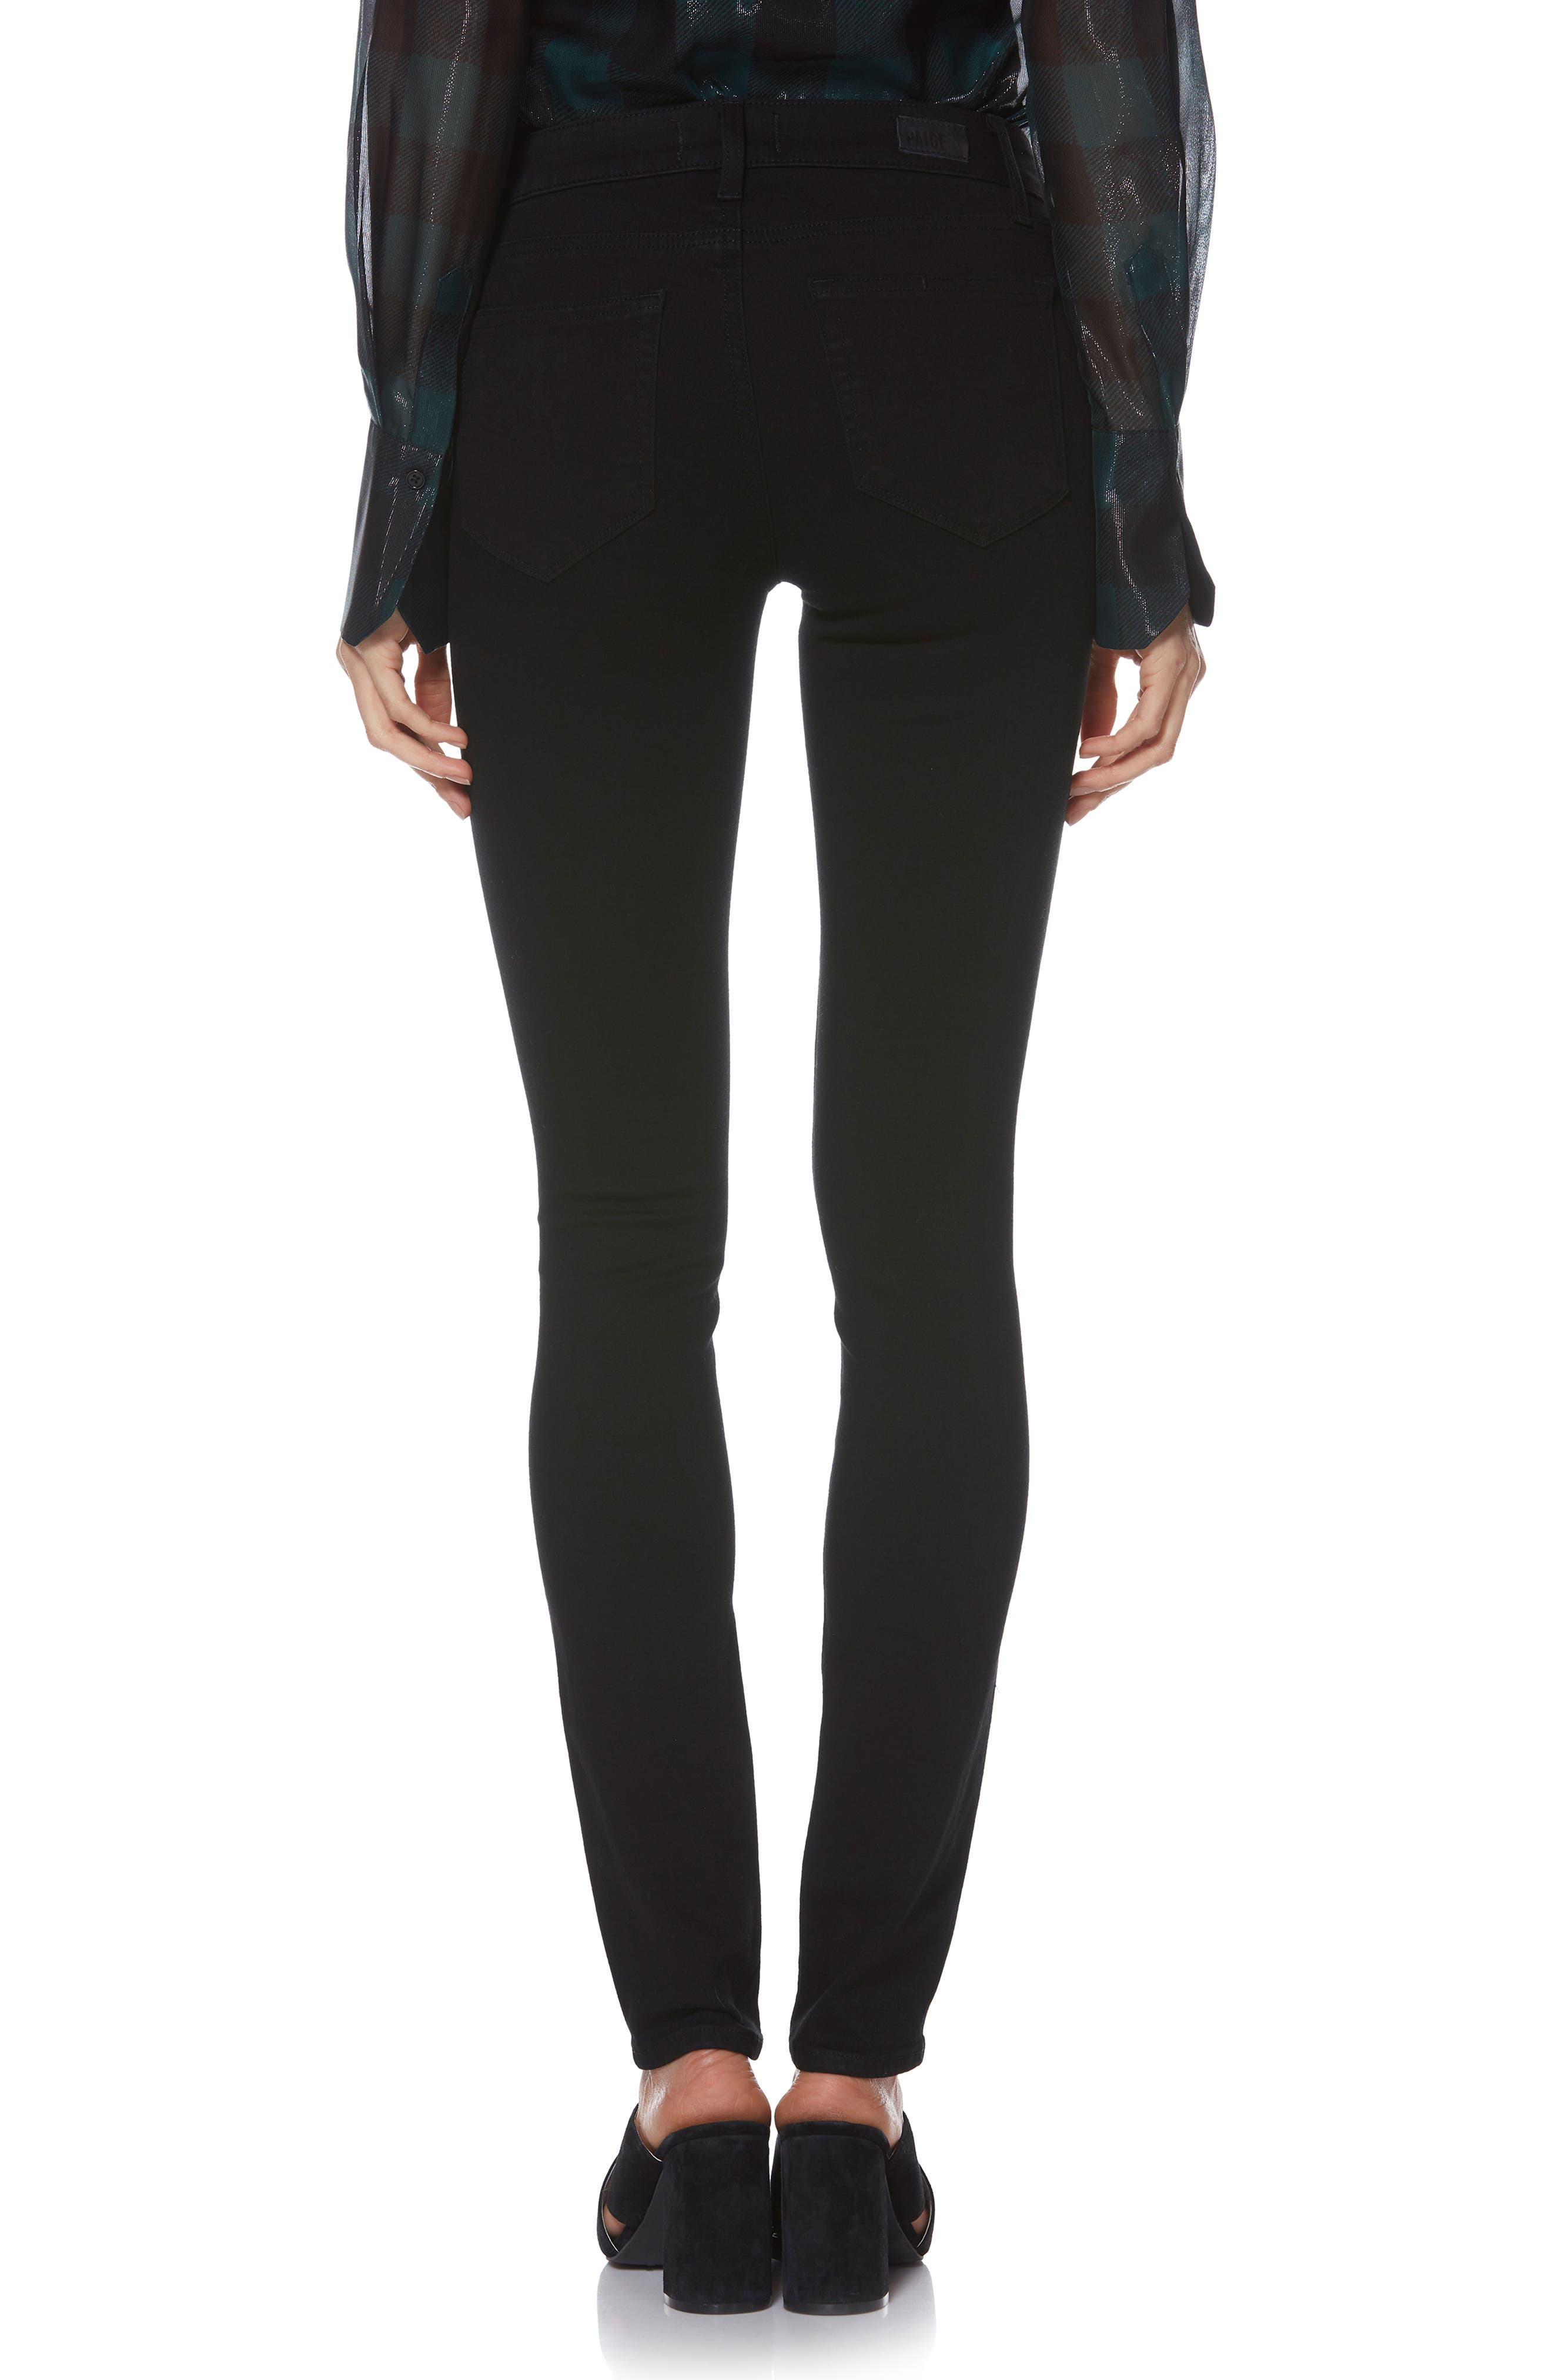 PAIGE, Transcend - Skyline Skinny Jeans, Alternate thumbnail 5, color, BLACK SHADOW